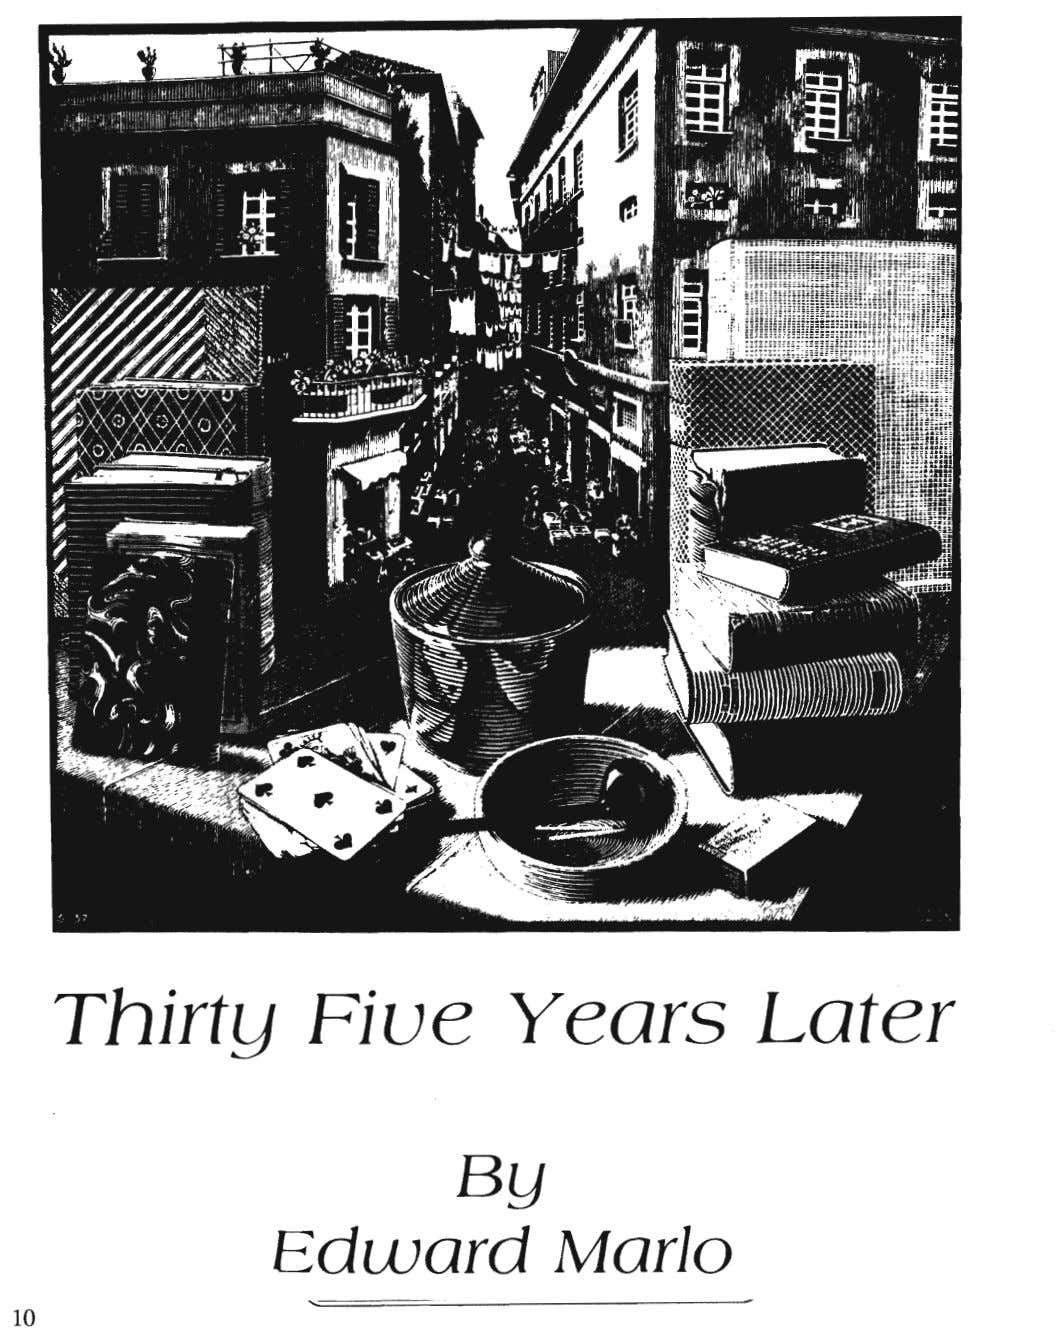 Thirty Five Years Later BY Edward Marlo